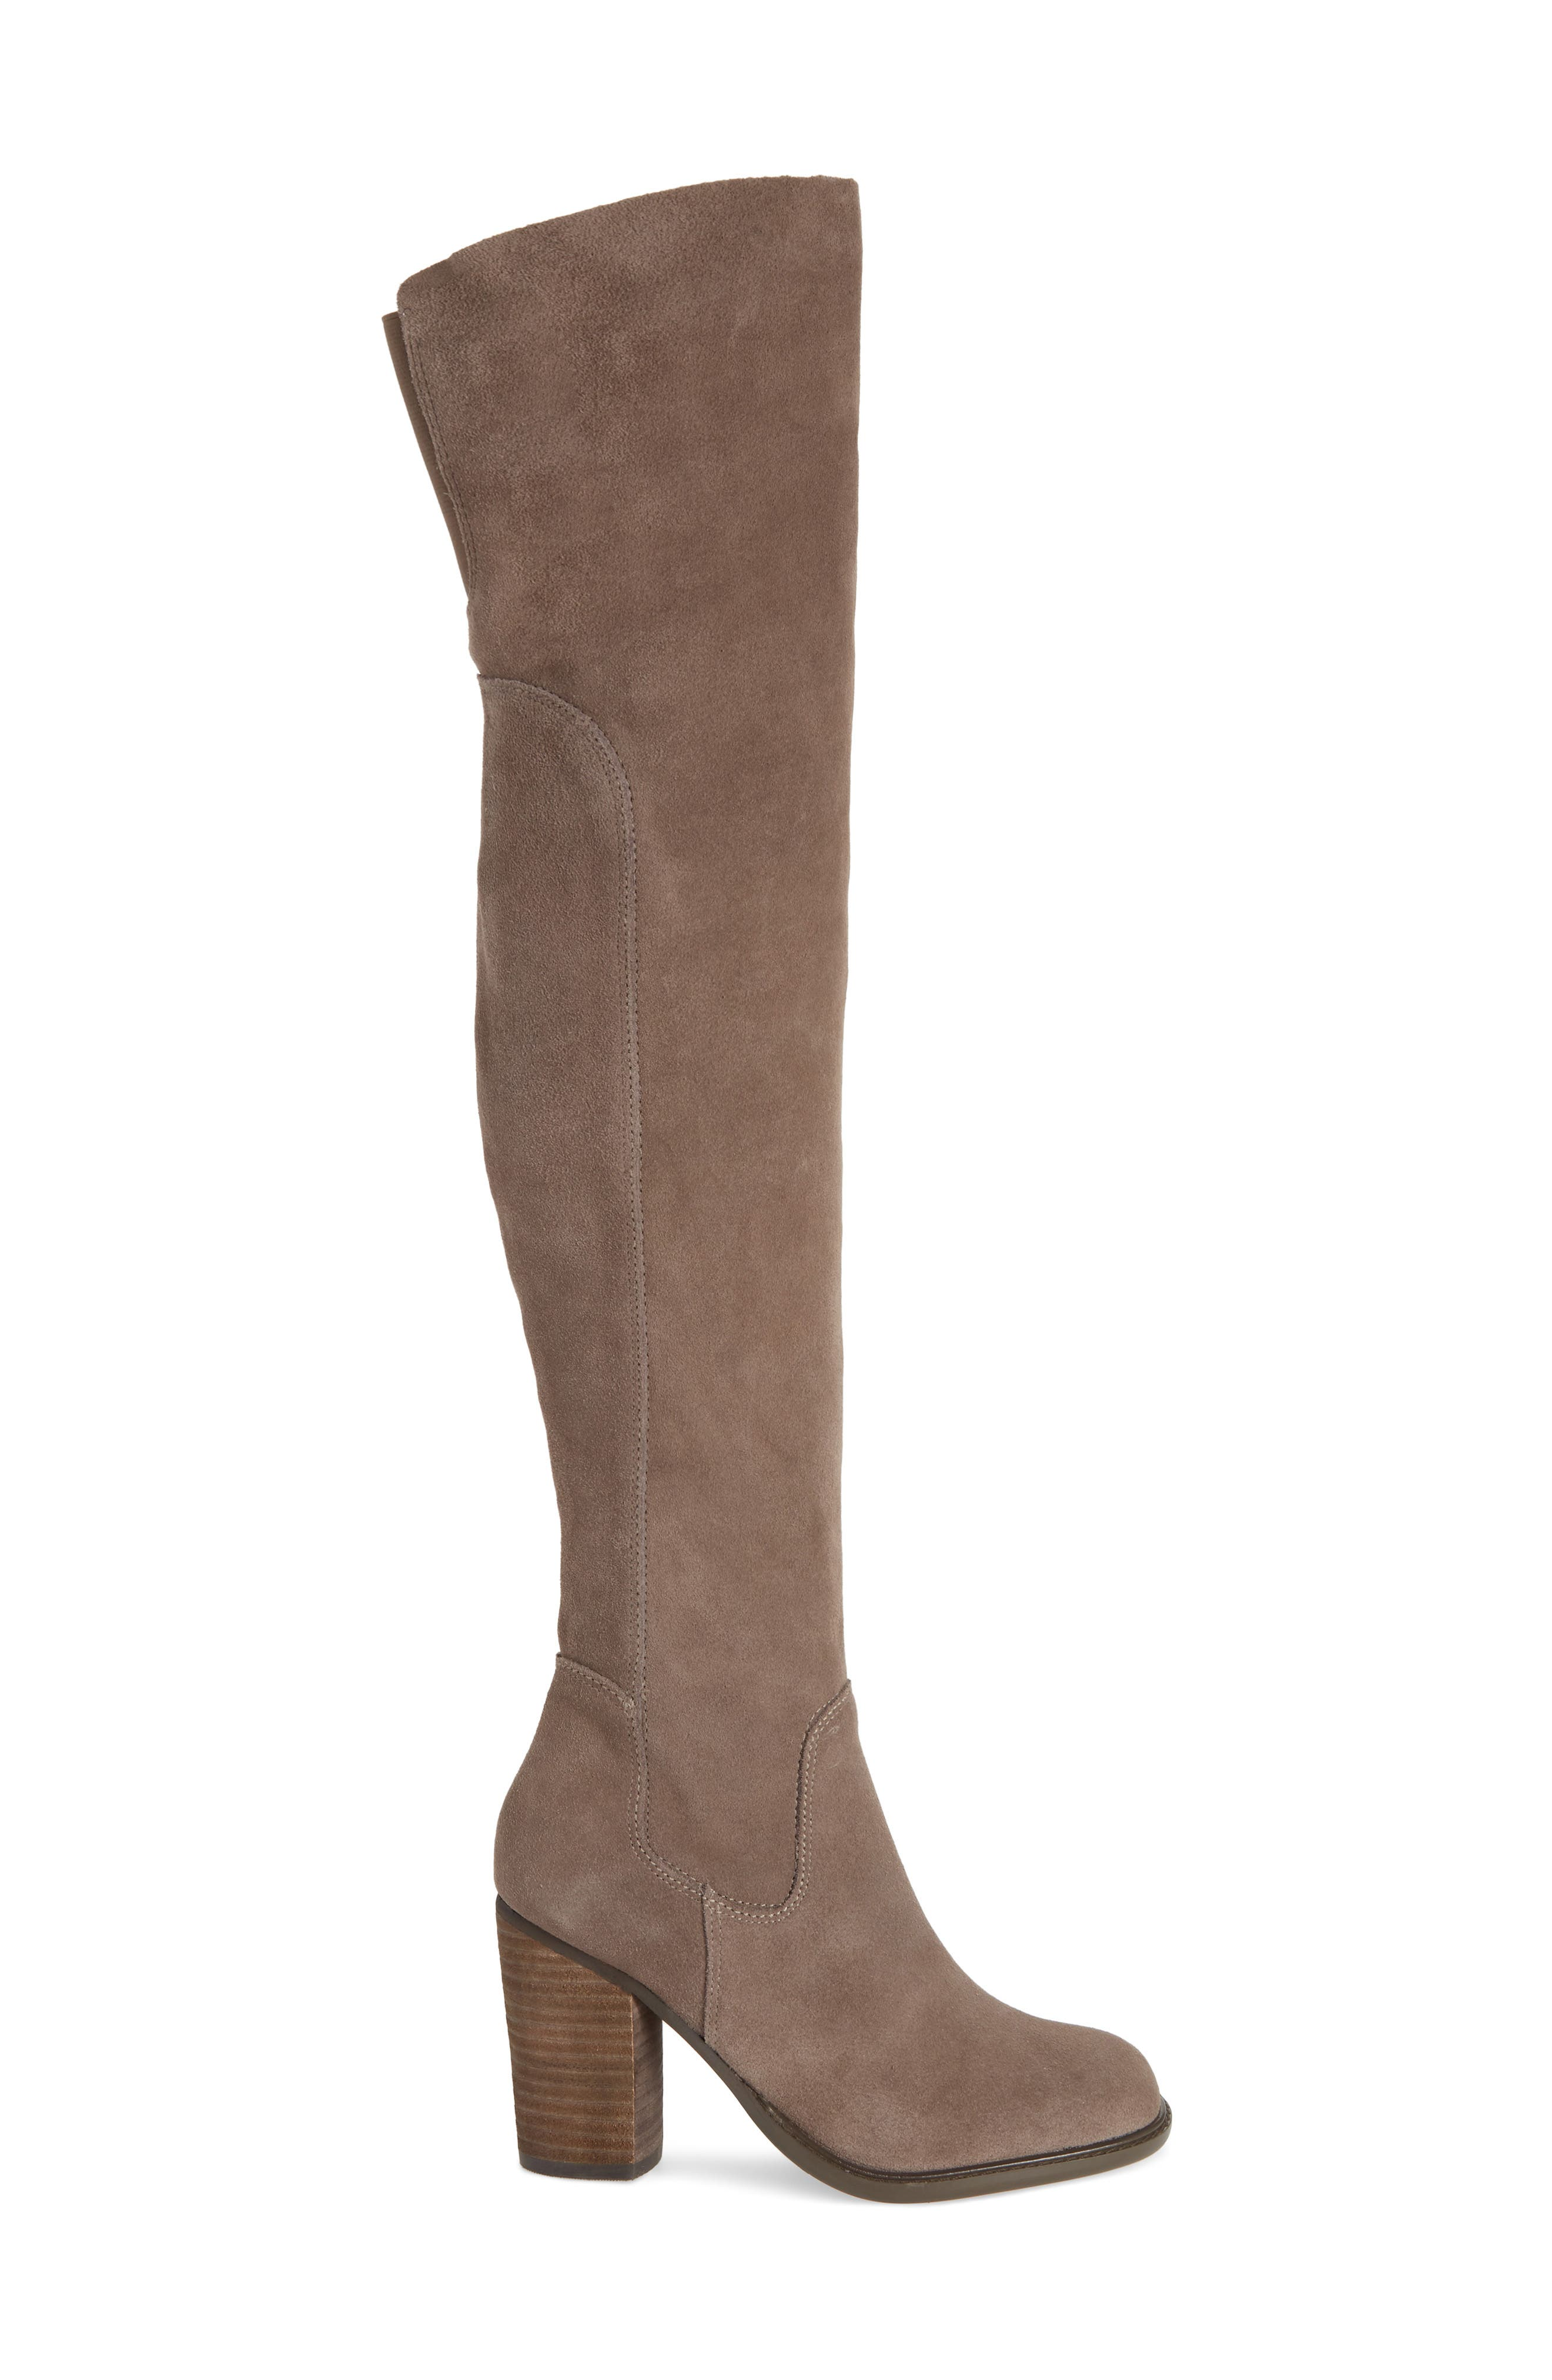 Logan Over the Knee Boot,                             Alternate thumbnail 3, color,                             020